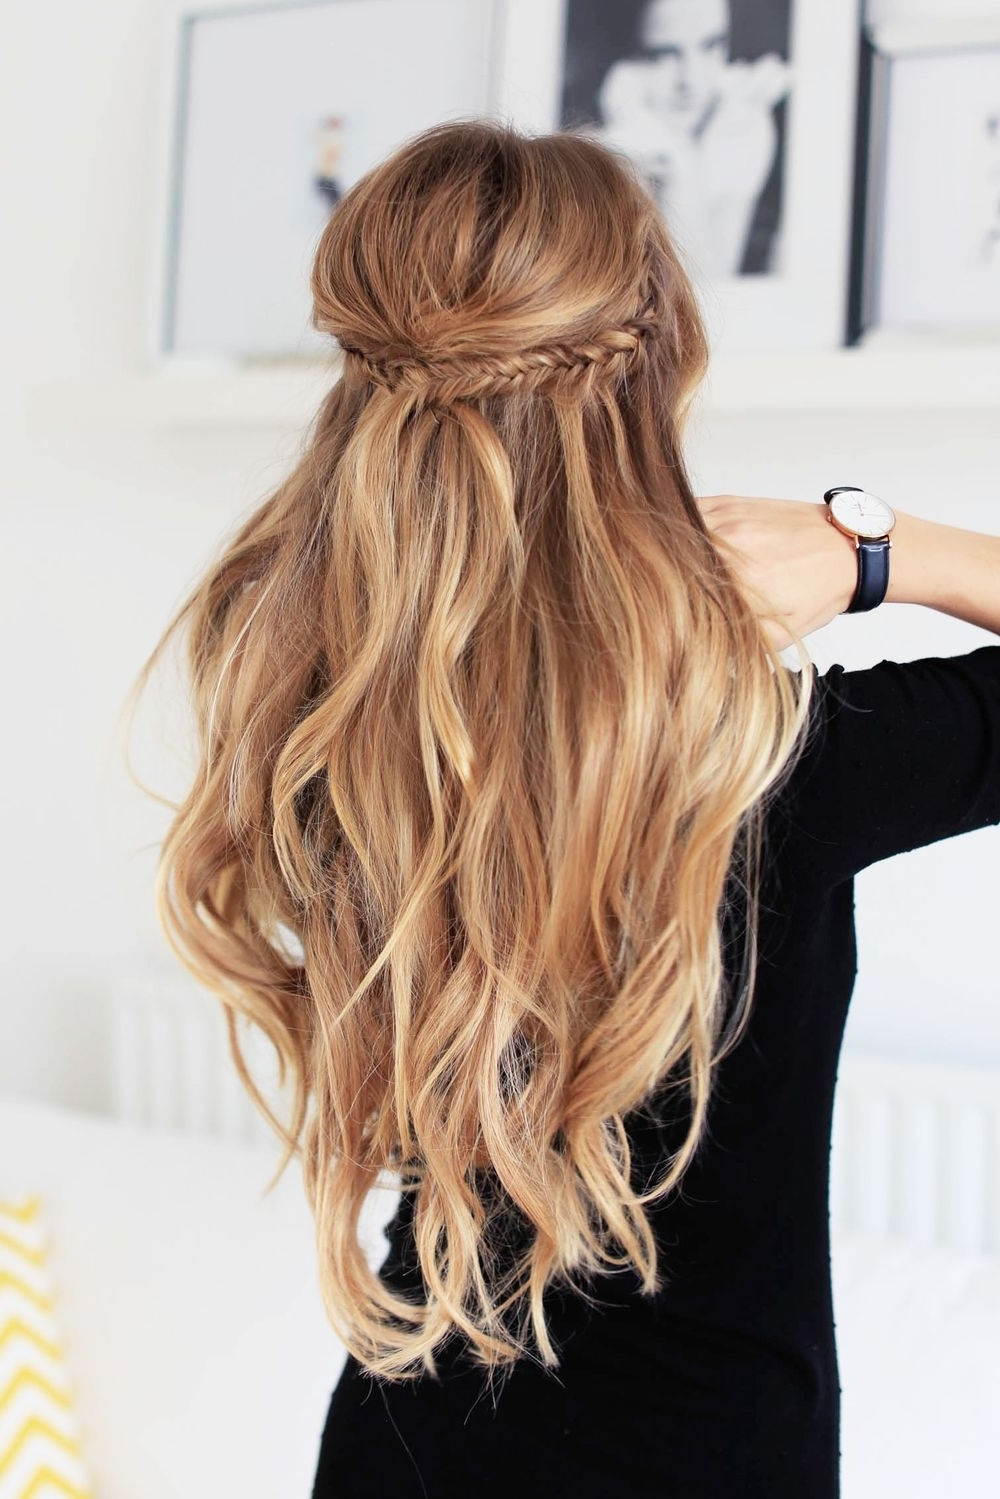 Widely Used Long Blond Ponytail Hairstyles With Bump And Sparkling Clip Intended For Make Two Small Fishtail Braids On Each Side, Then Put Them Together (View 2 of 20)